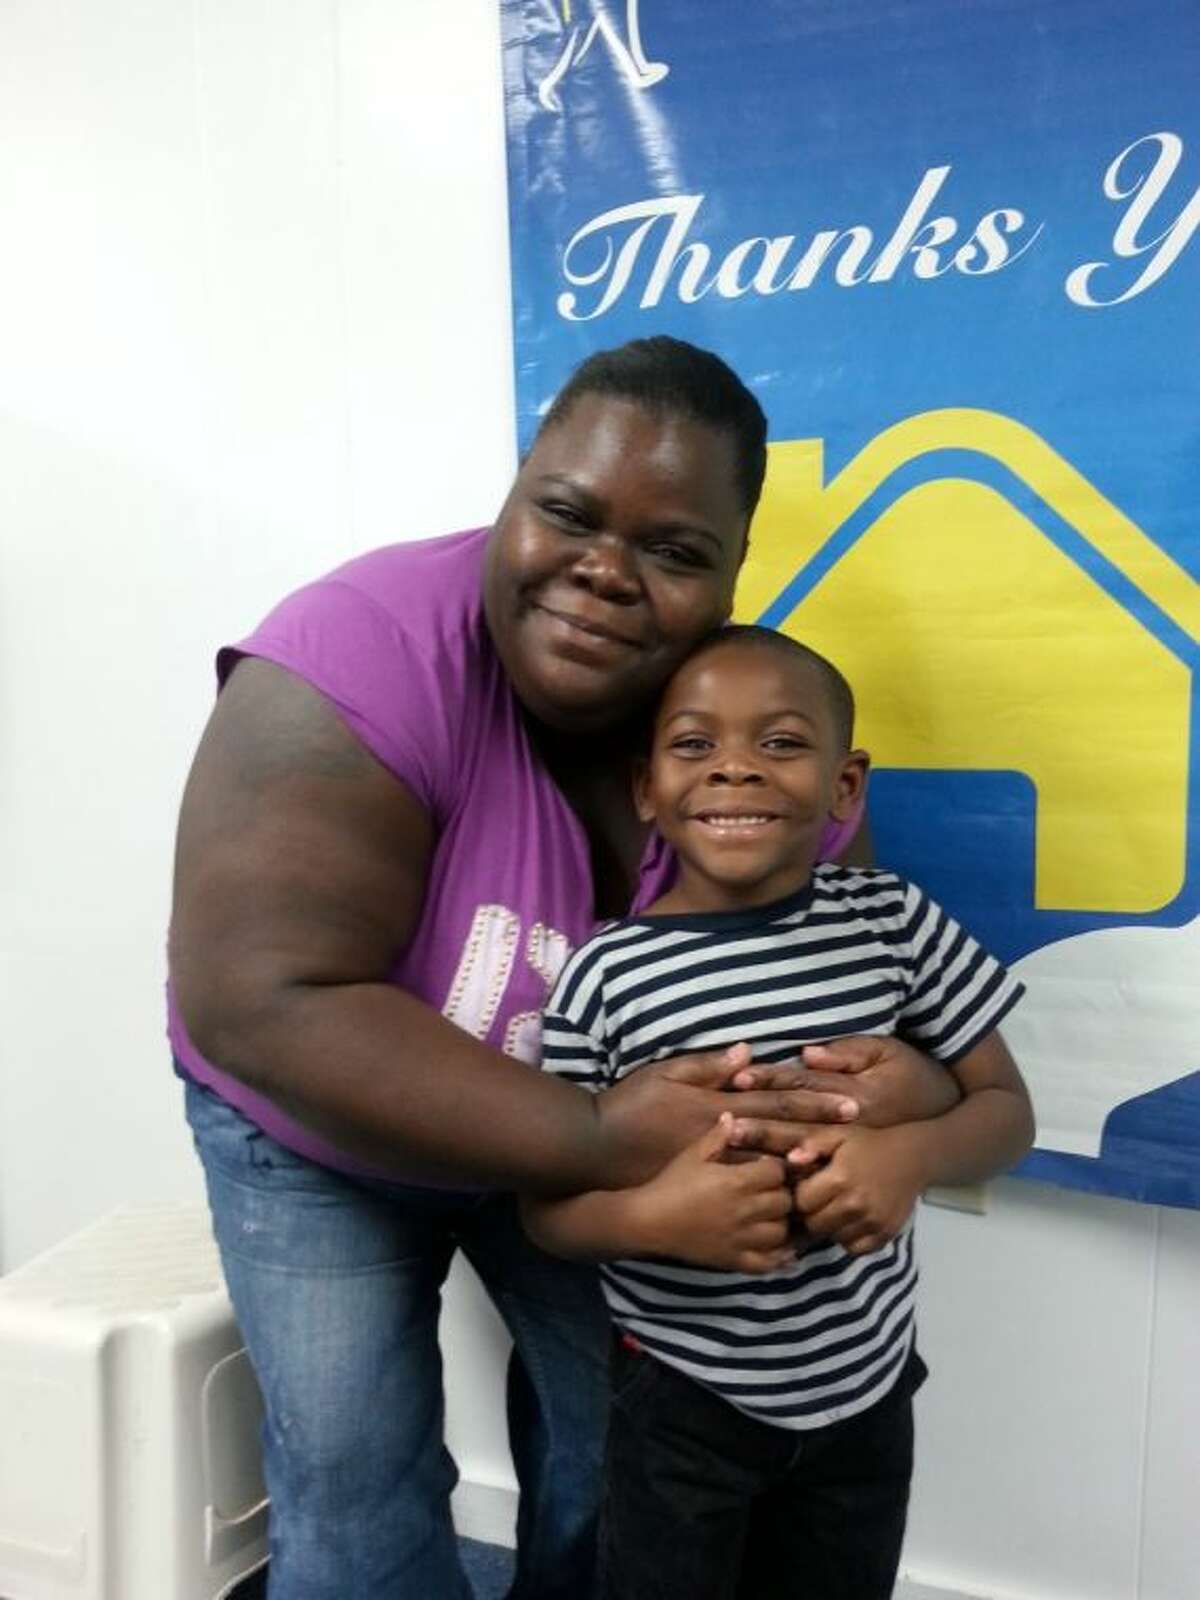 Latisha Coleman and her six-year-old son Devin, two of the beneficiaries of Fort Bend Family Promise.